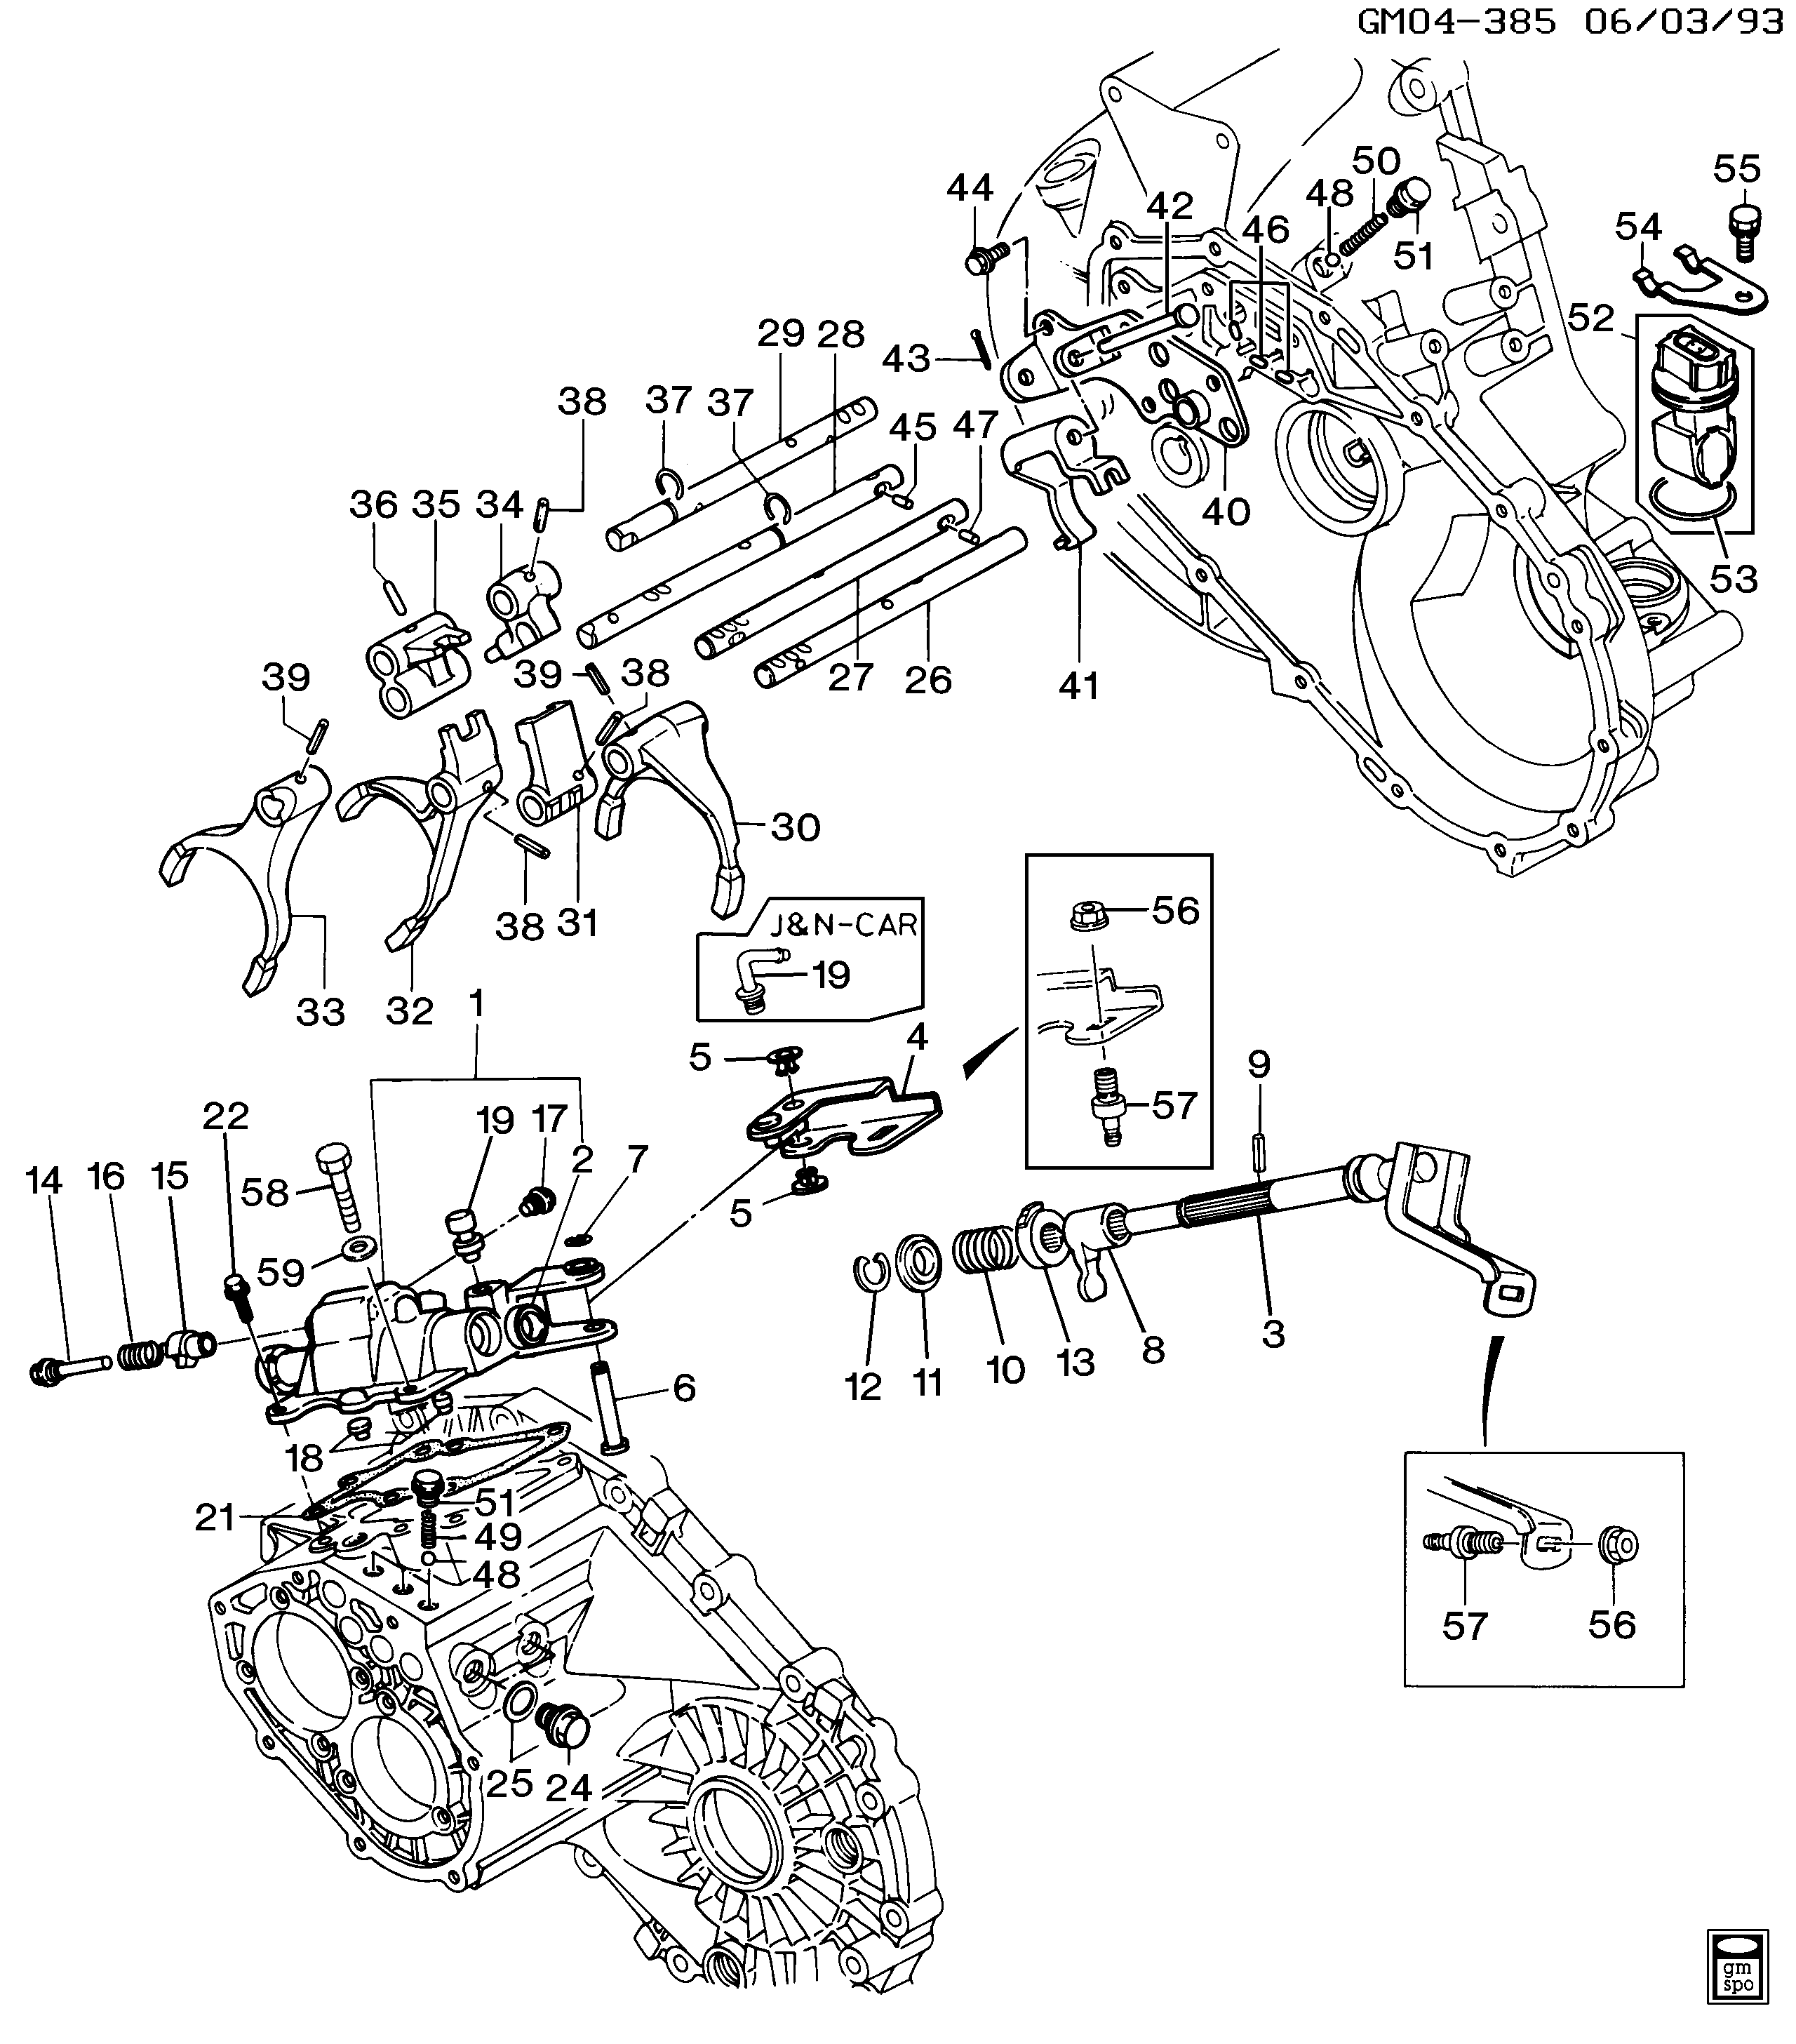 Pontiac Sunfire Transmission Wiring Diagram